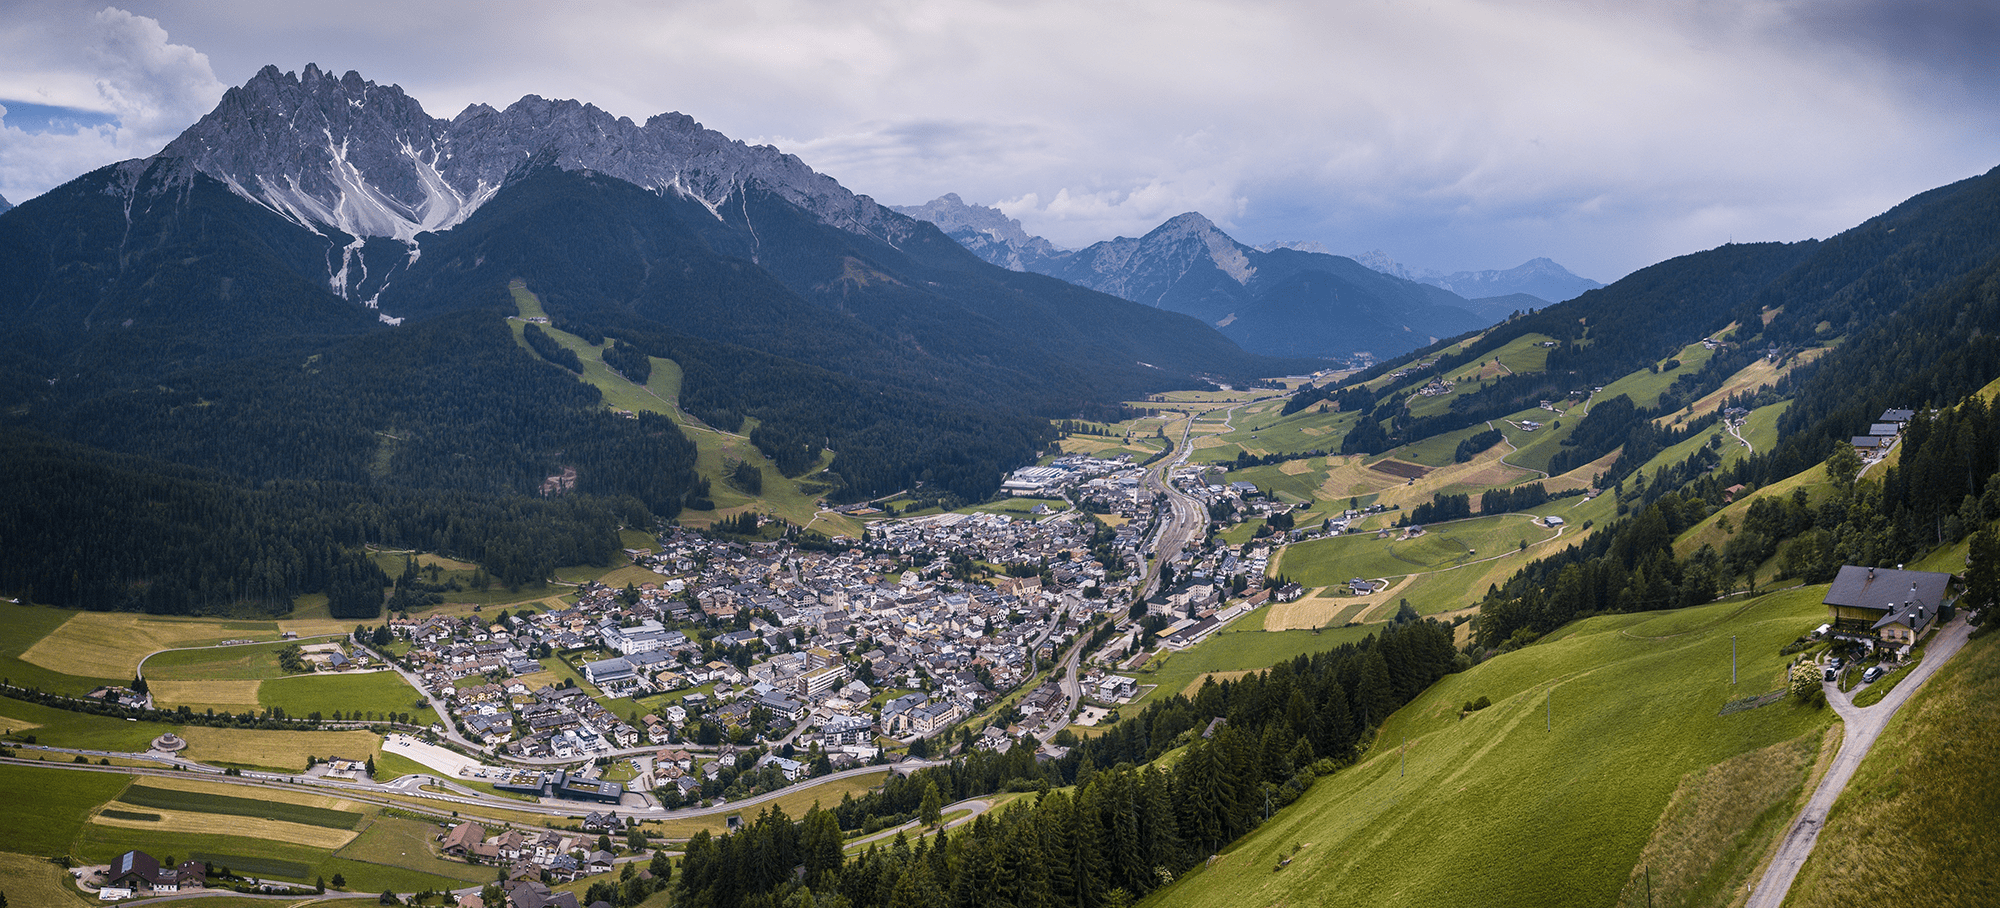 Family Hotels in San Candido